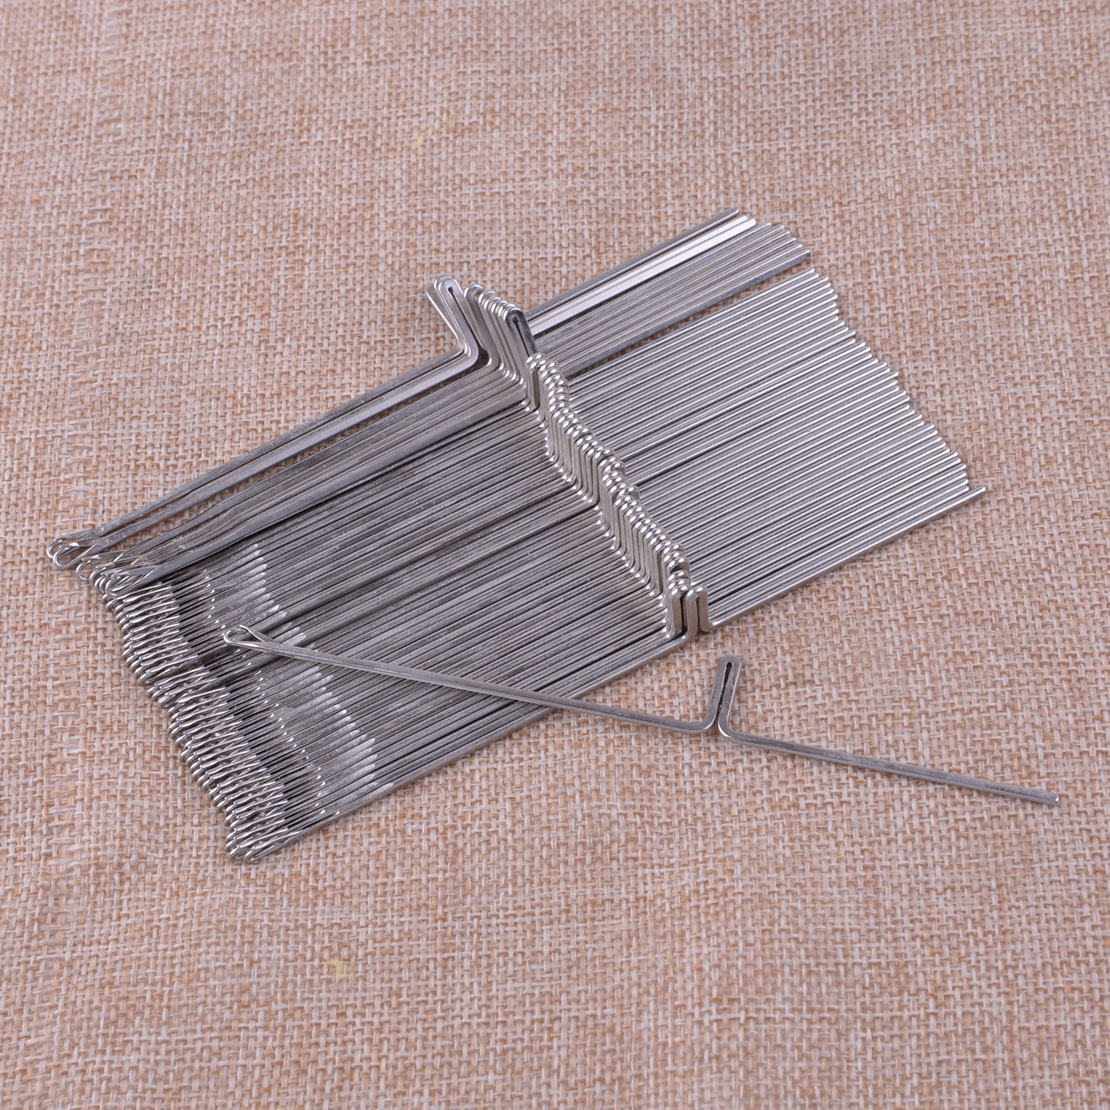 New 50pcs Knitting Machine Needles Fit For Silver Reed Studio Singer Empisal Knitmaster Ribbing Attachment SRP50 SRP60 SRP60N